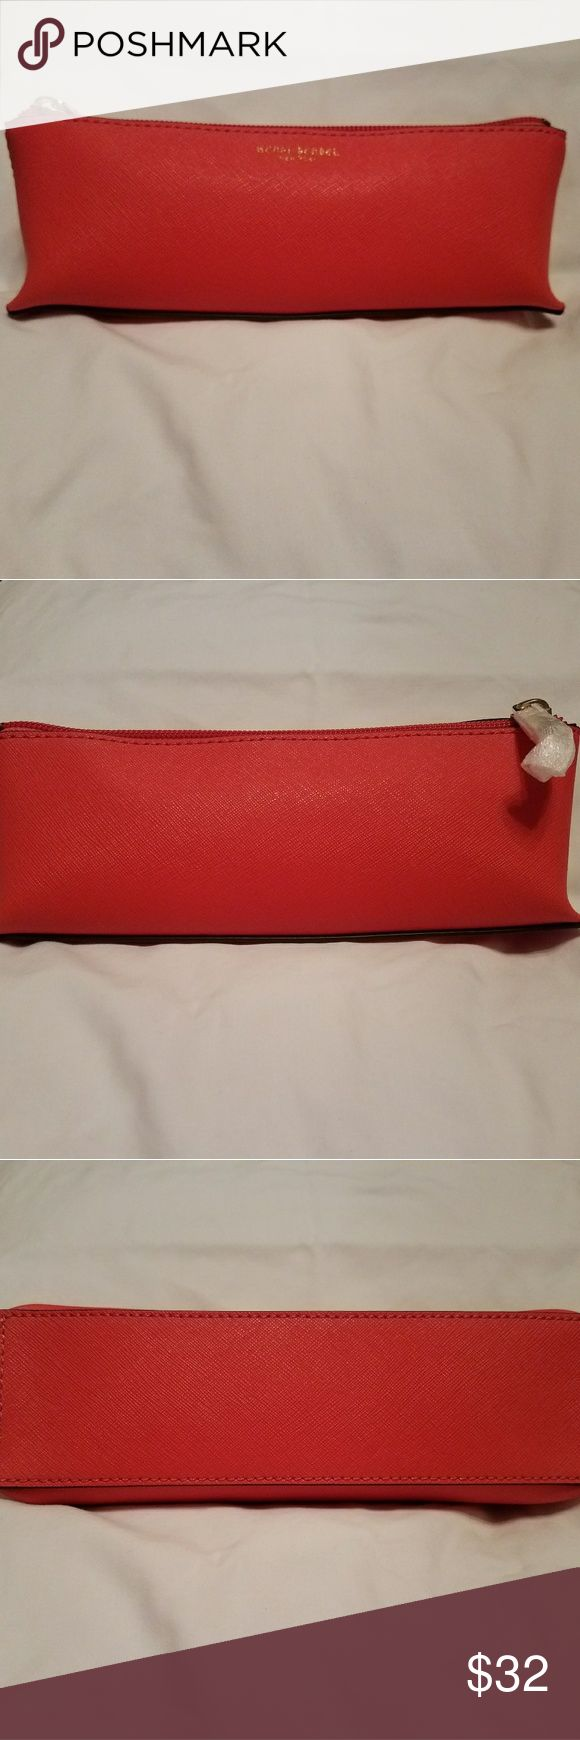 """Henri Bendel Orange West 57th Small Cosmetic Bag New With Tags.  Henri Bendel - Orange West 57th  Small Cosmetic Bag.  Saffiano leather with gold brass accent. Triangular shape 1"""" at top and 3"""" at bottom.  8"""" long.  Fits great in the Crossbody Tote in My Closet.   Very cute cosmetic bag.  Dust cover bag included.  Smoke-free and pet-free home. Henri Bendel Bags Cosmetic Bags & Cases"""